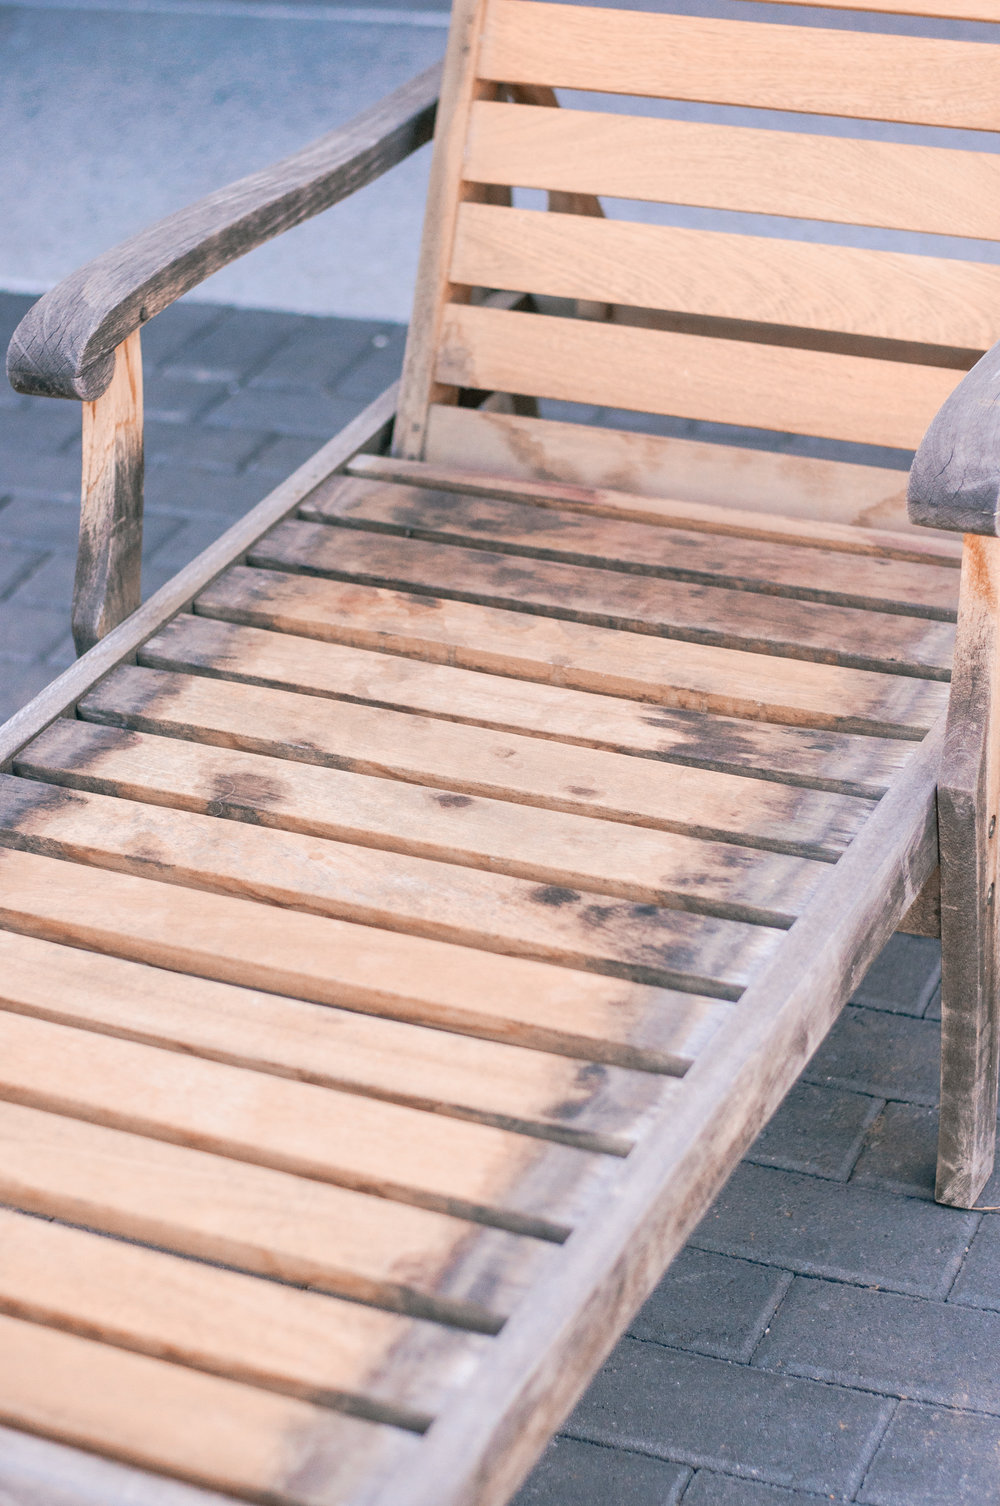 How To Clean Teak Wood Furniture